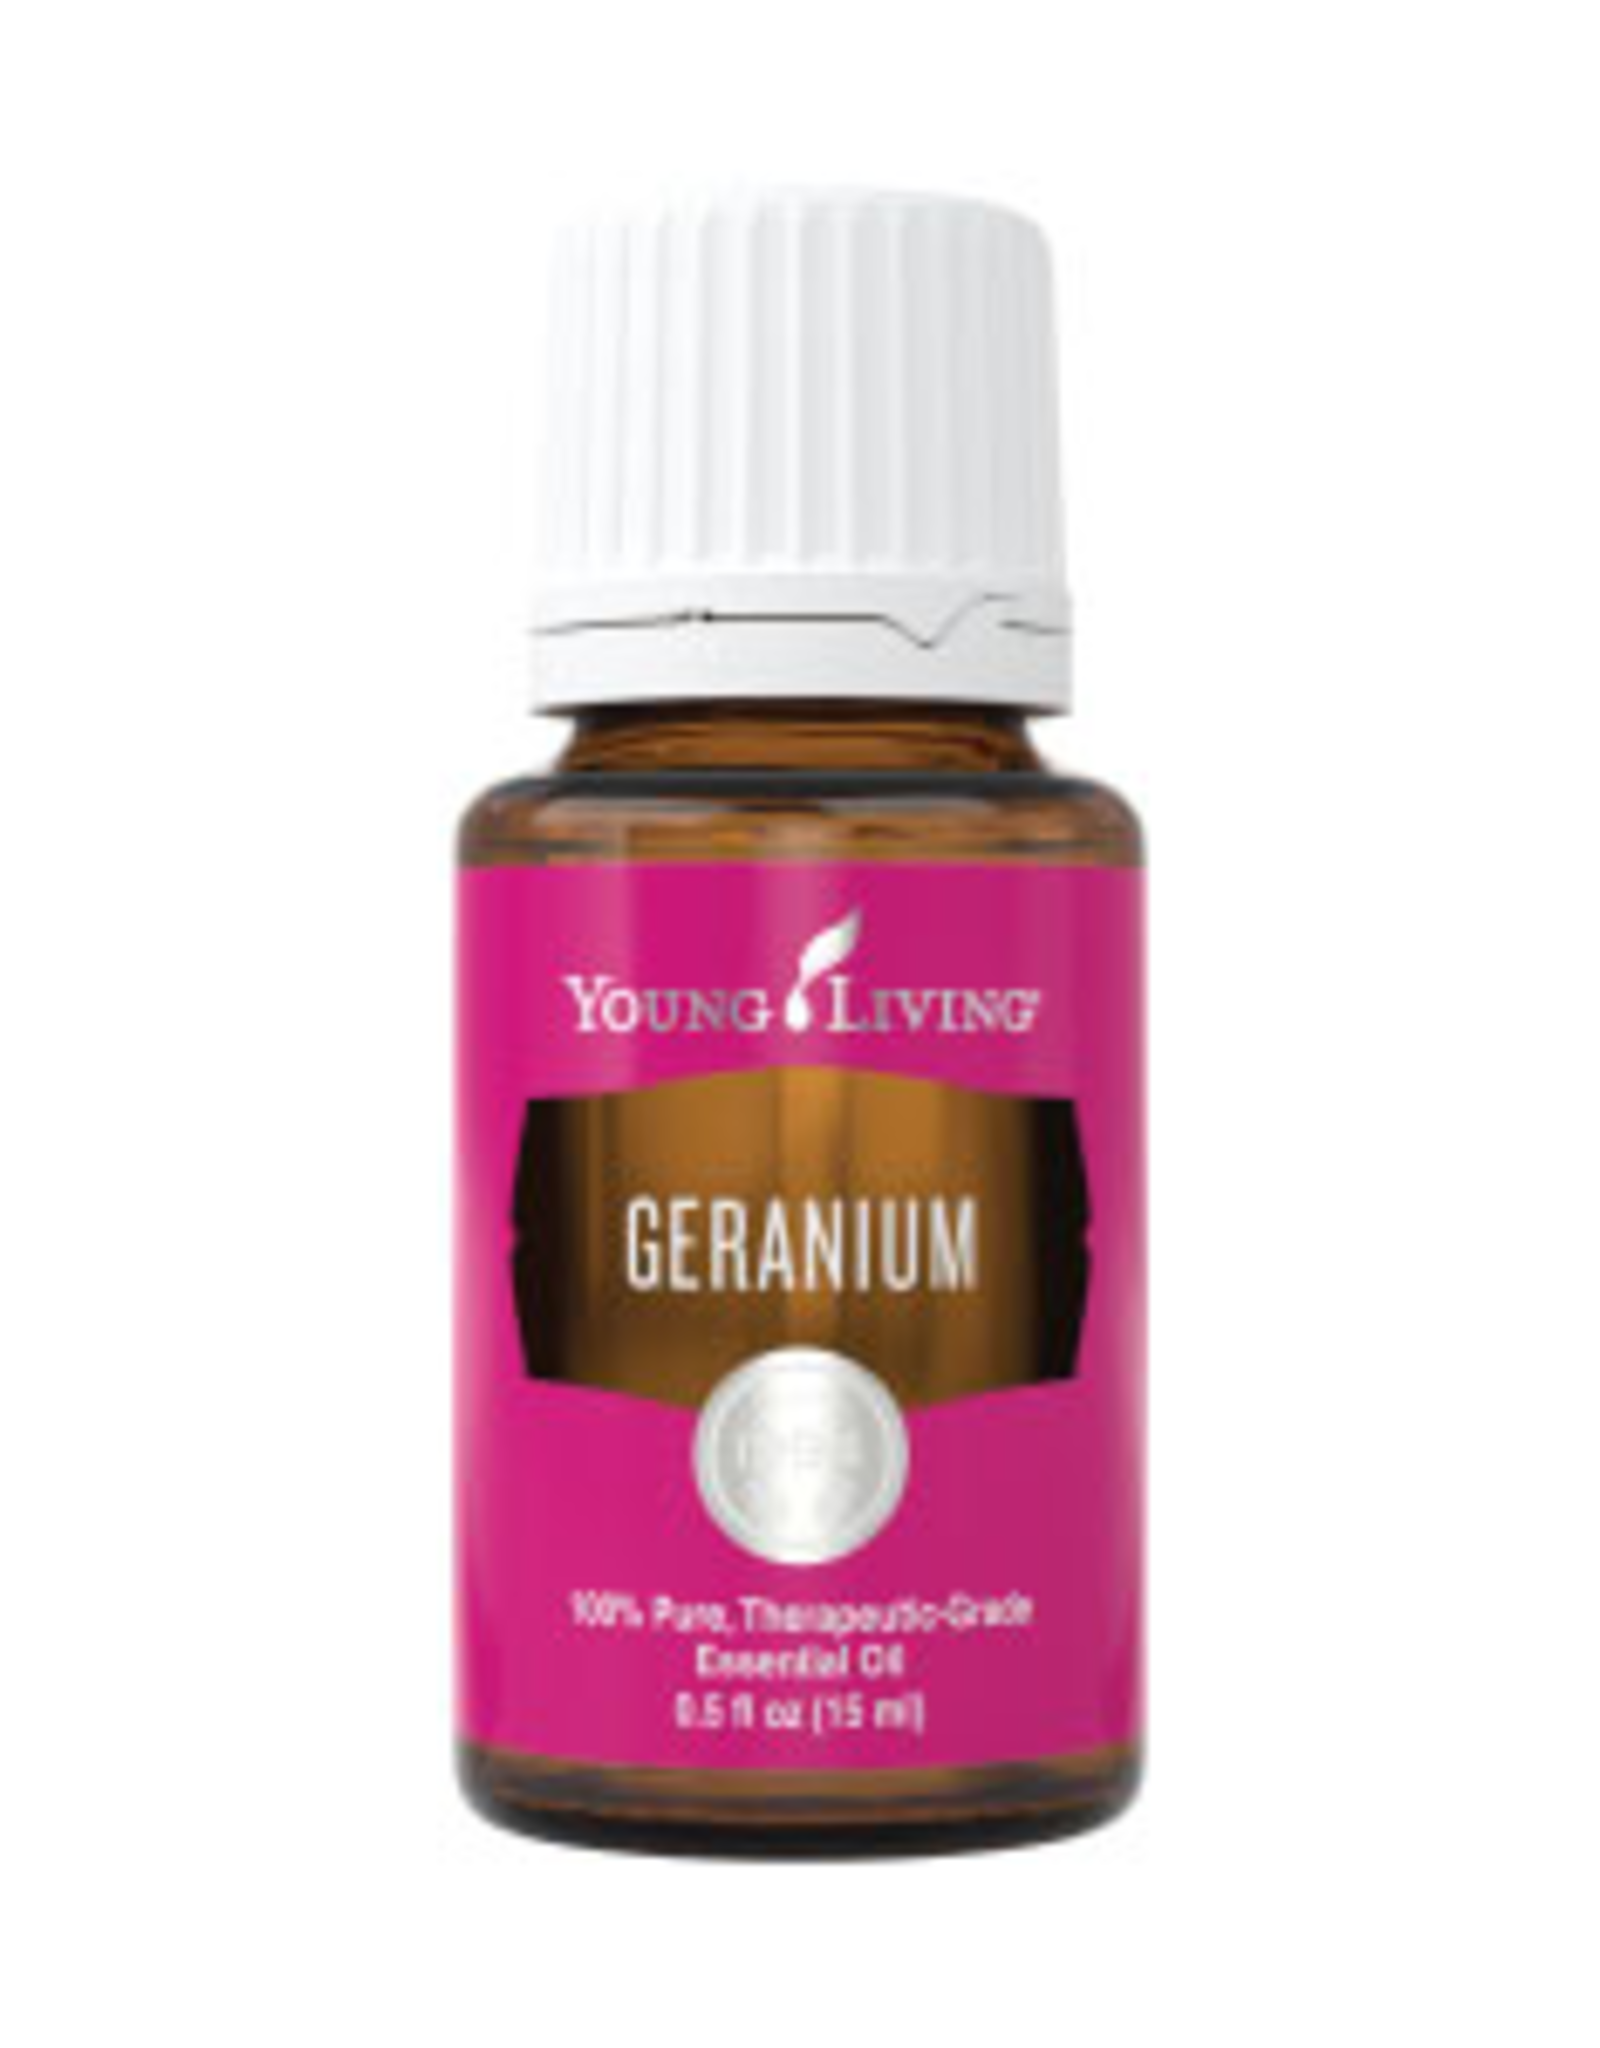 Young Living Geranium 15 ml